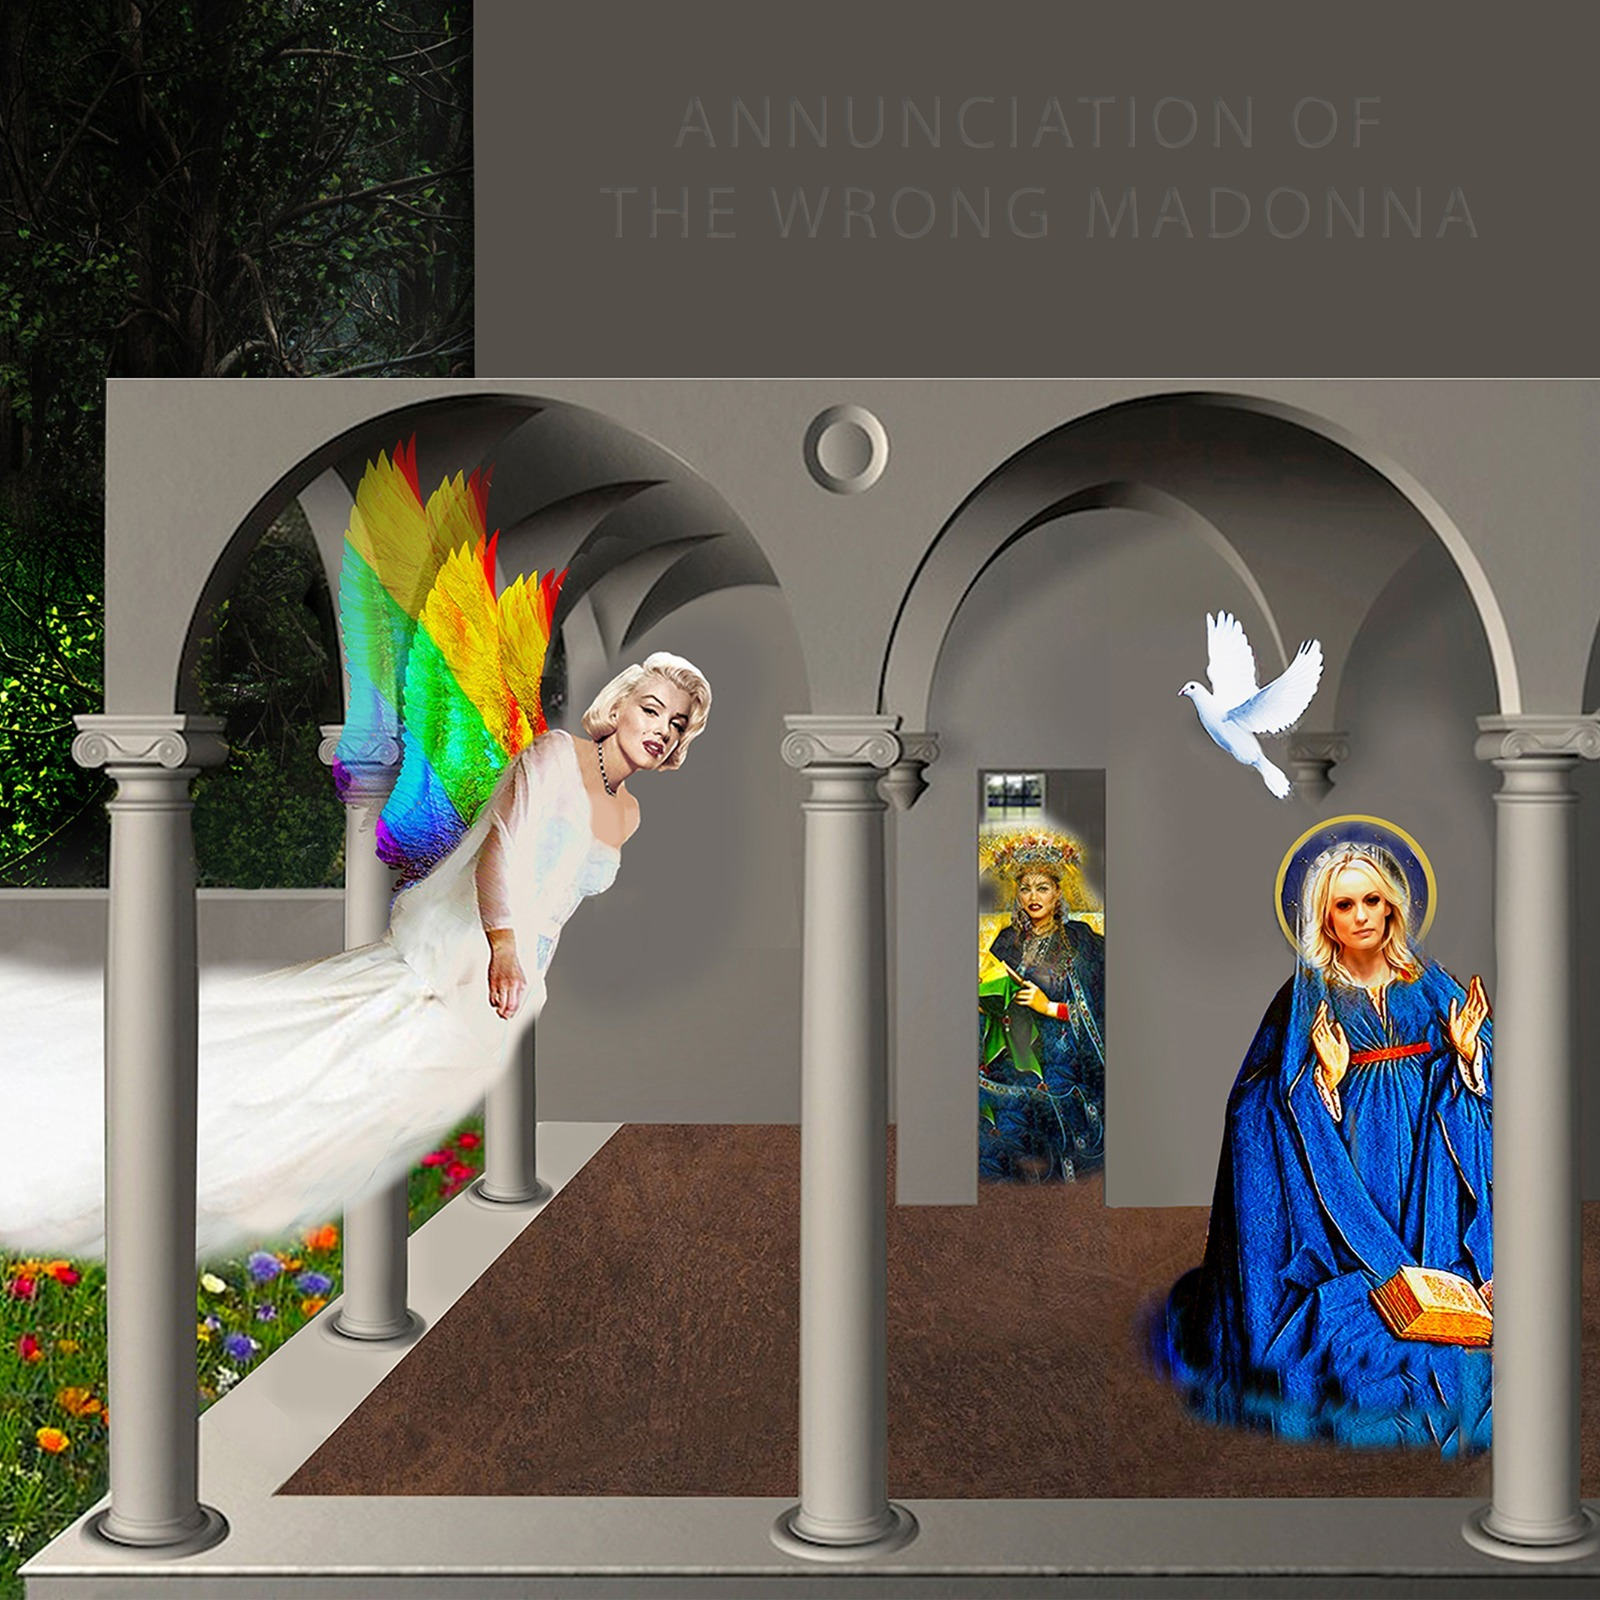 The Annunciation of the Wrong Madonna by Gordon Coldwell